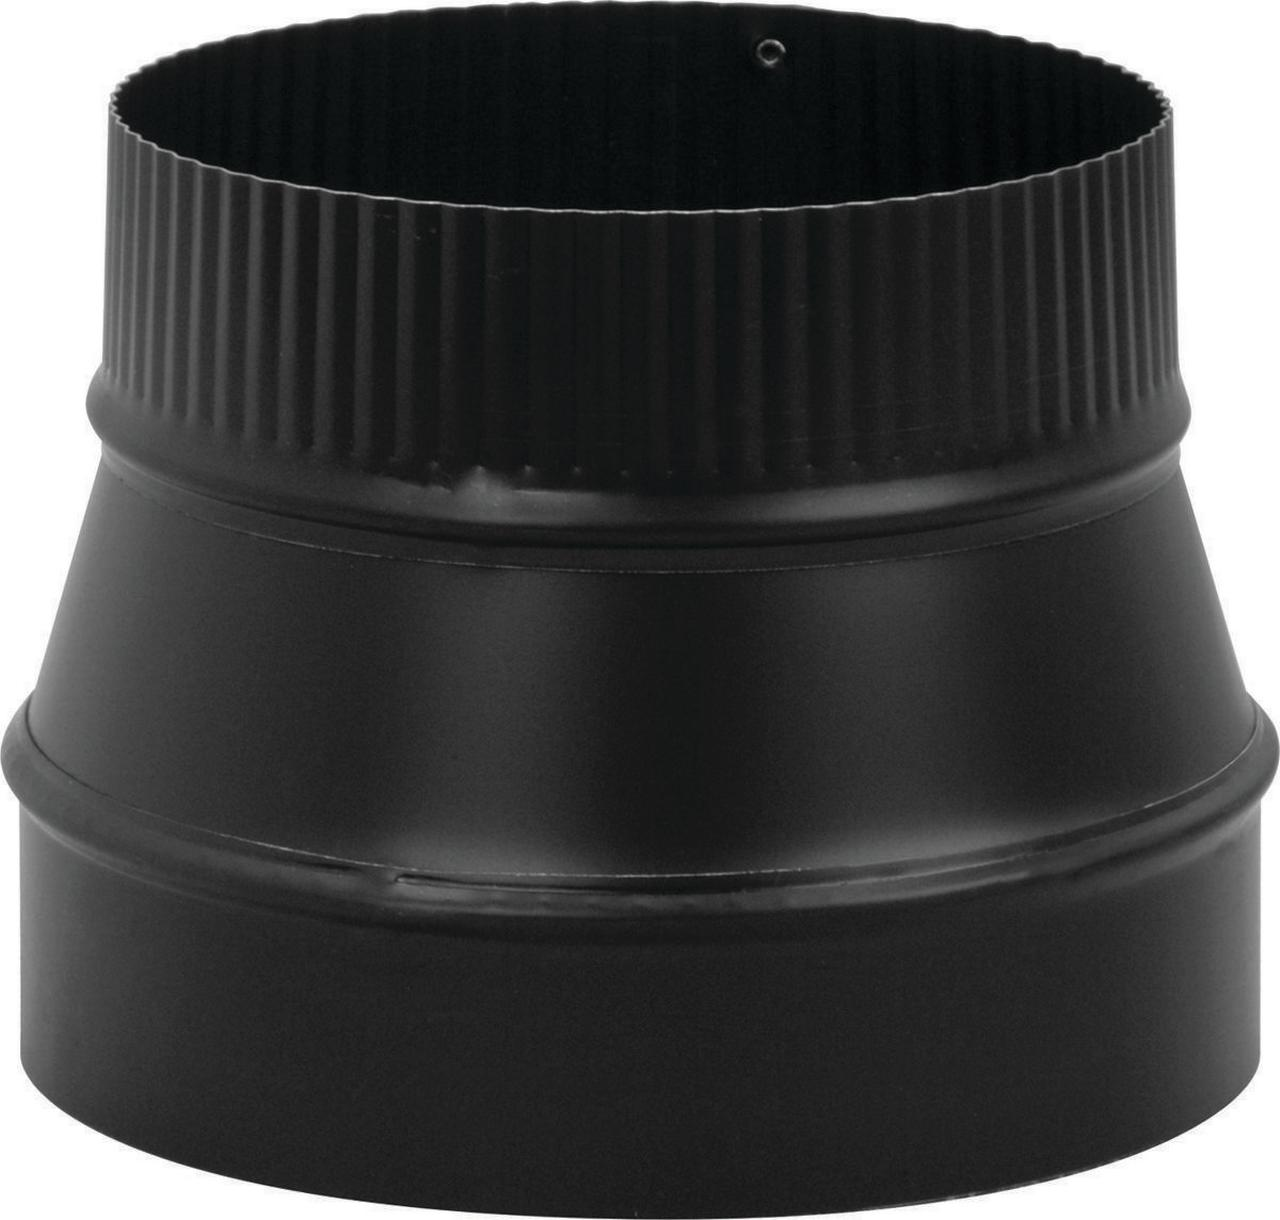 Imperial BM0080 Stove Pipe Reducer, 8 X 7 in, Small End Crimped, 24 ga